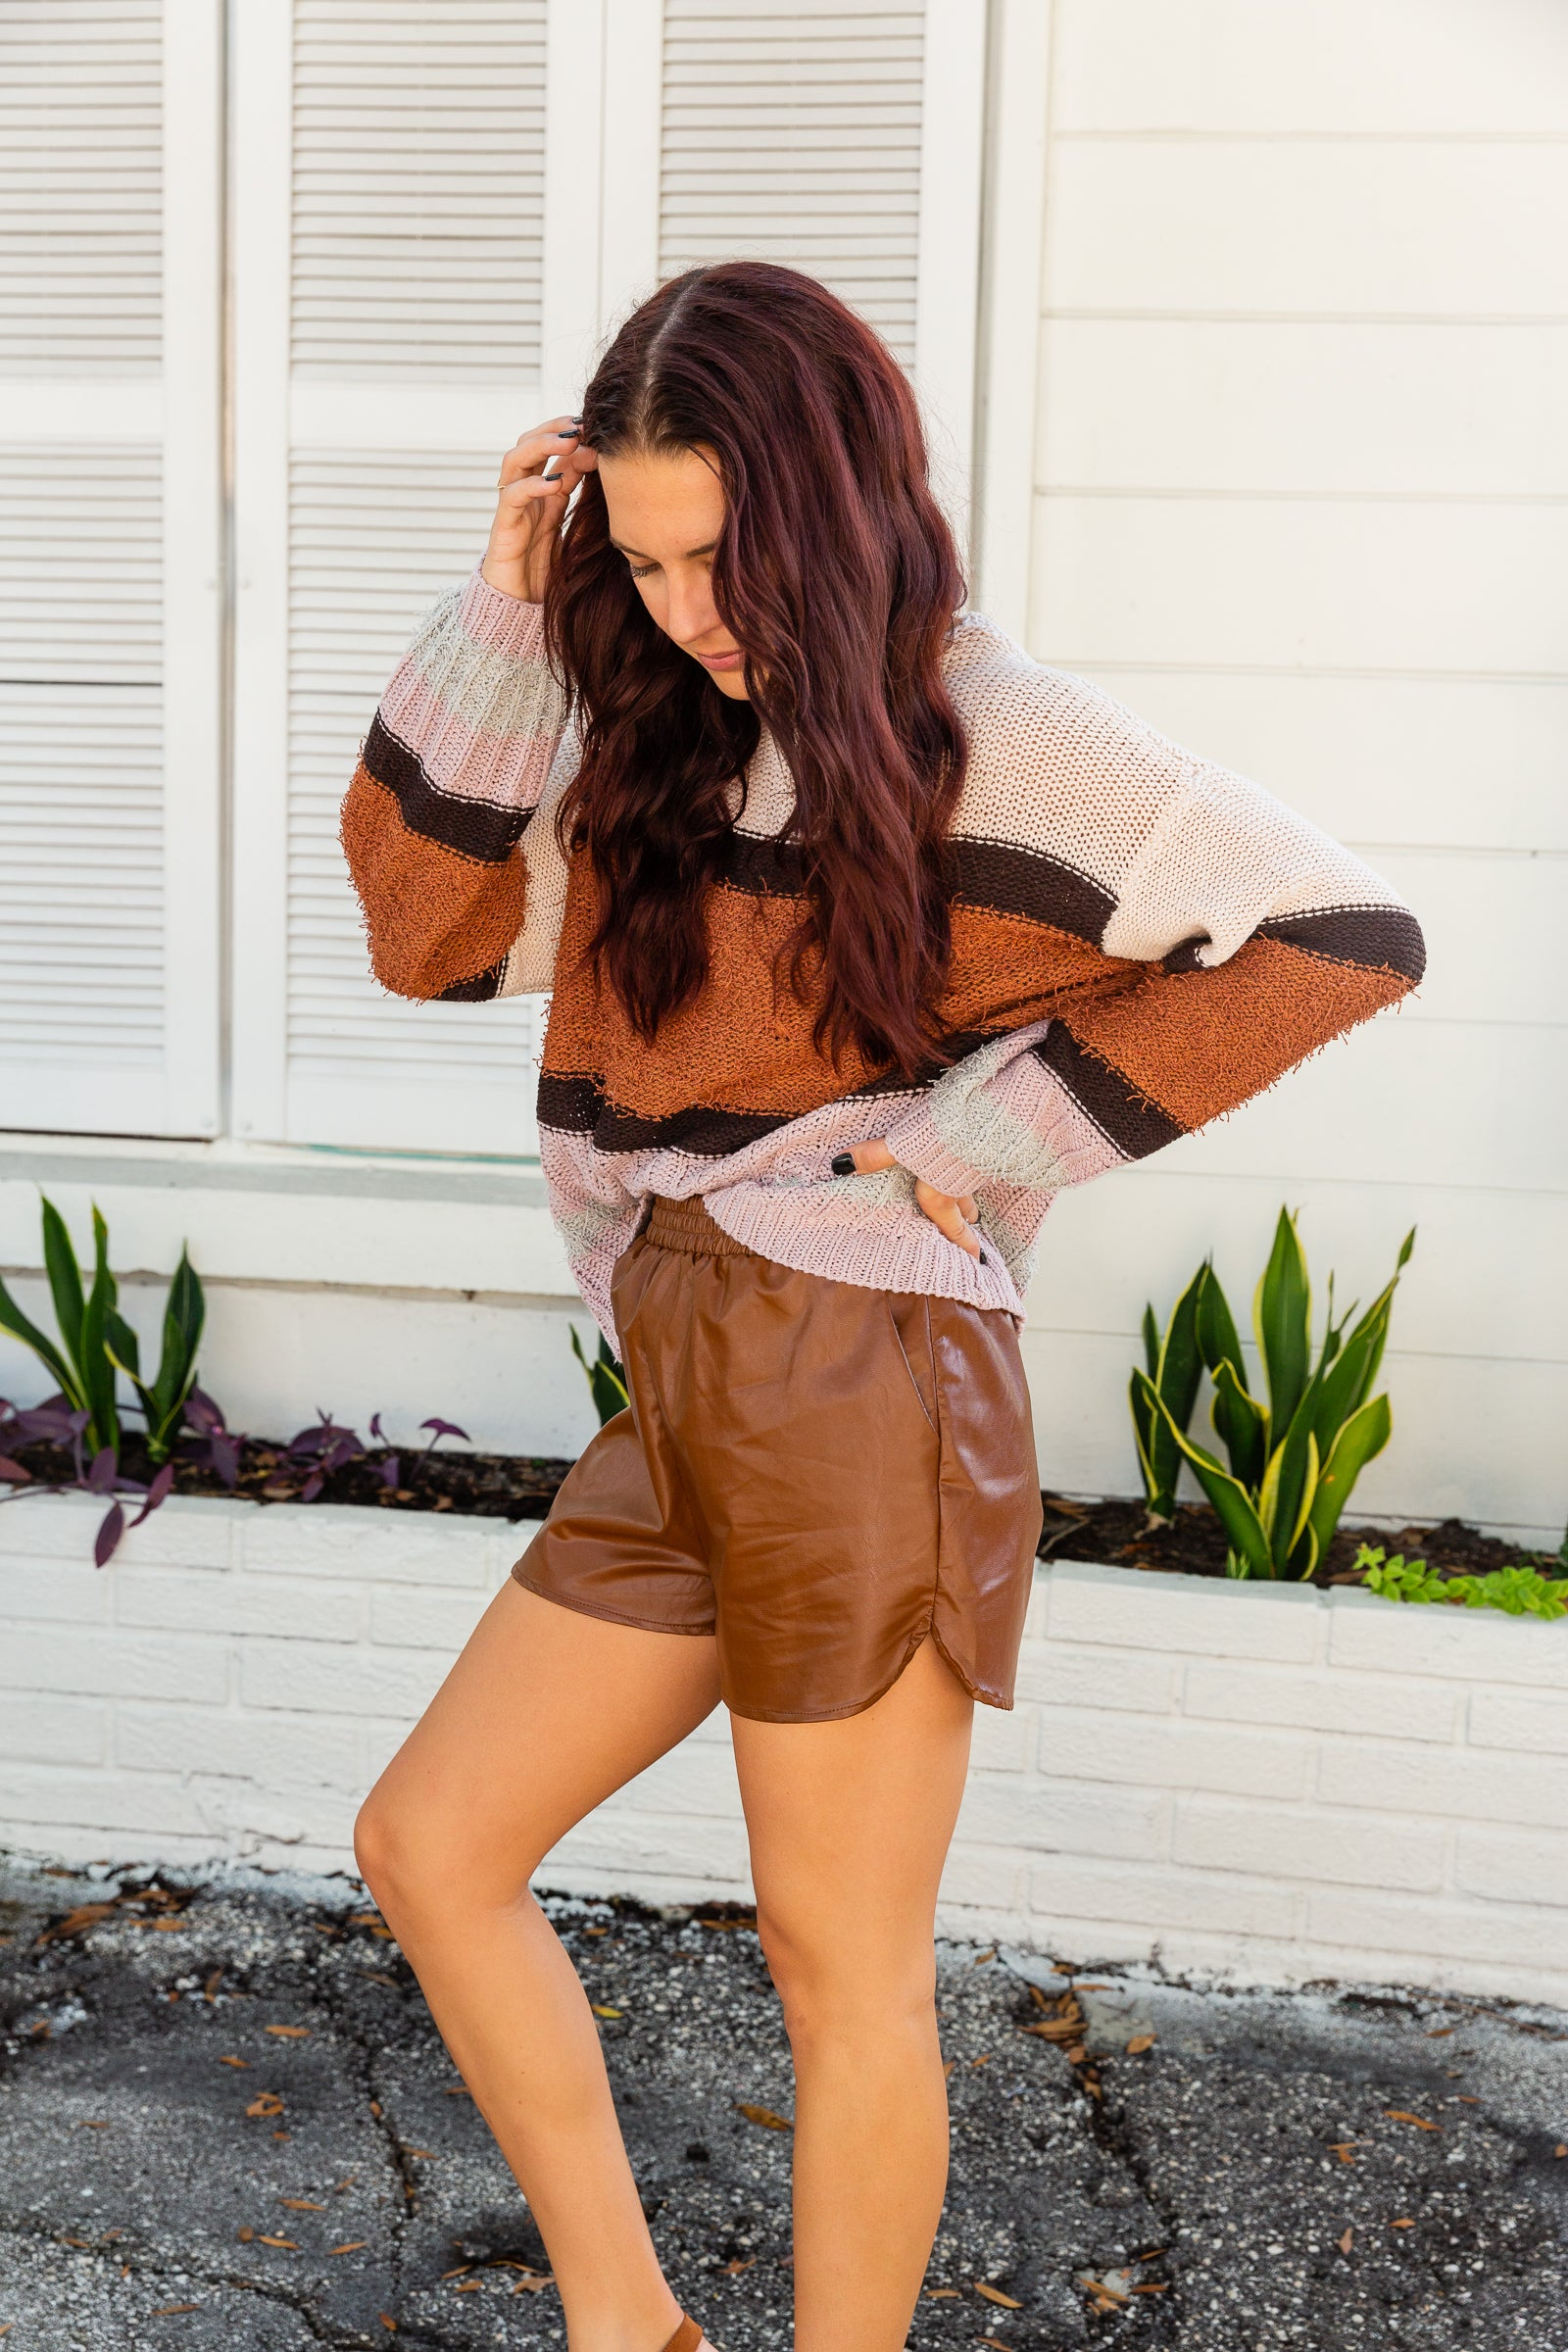 These pleather shorts have an elastic waistband and go into loose-fitting relaxed shorts. Style these vegan leather shorts with a cropped sweater.